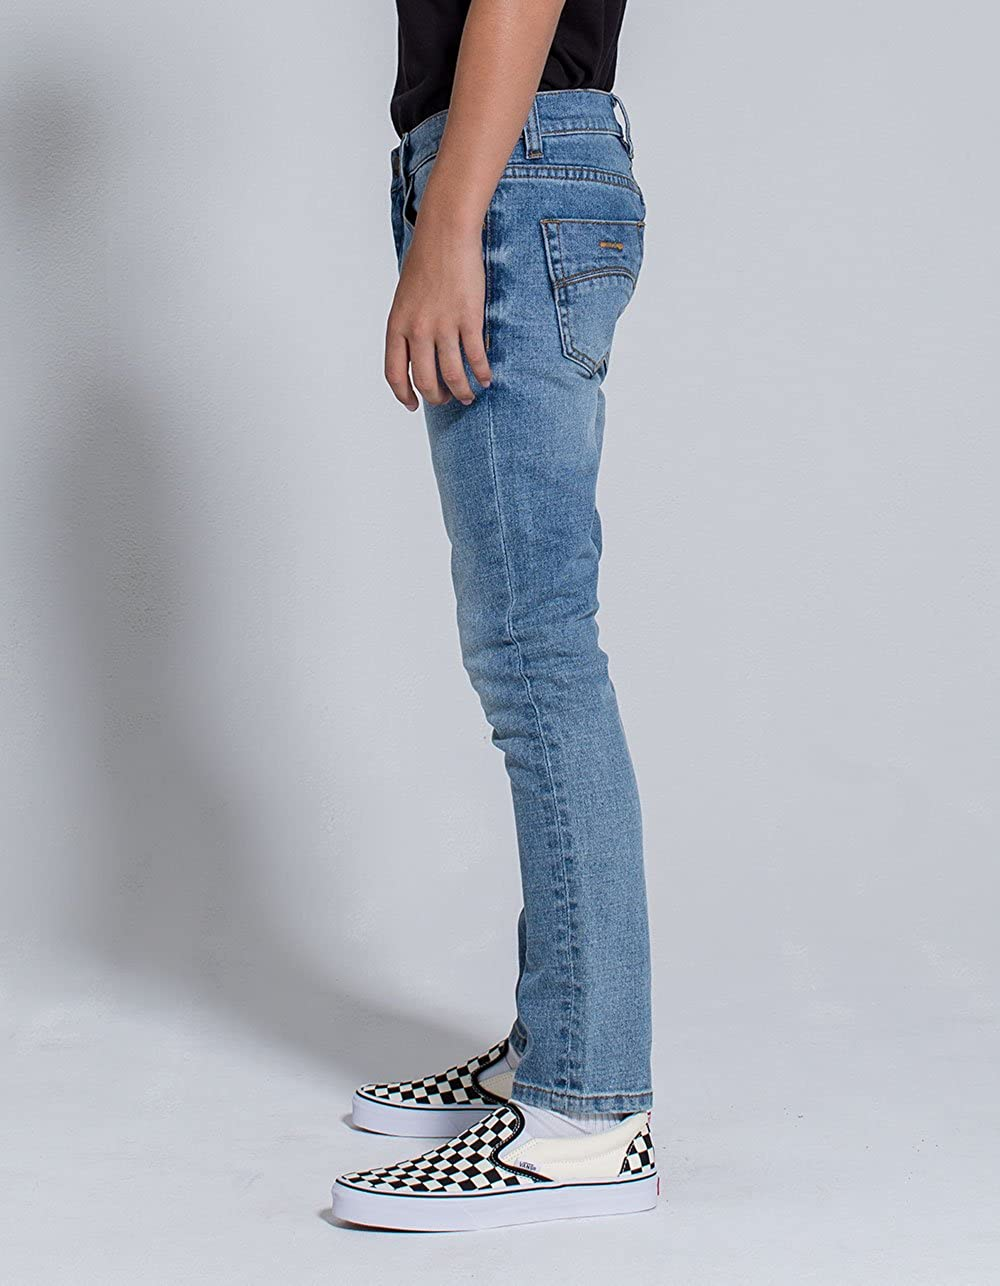 Rsq Tokyo Super Skinny Stretch Boys Jeans Pacific 10